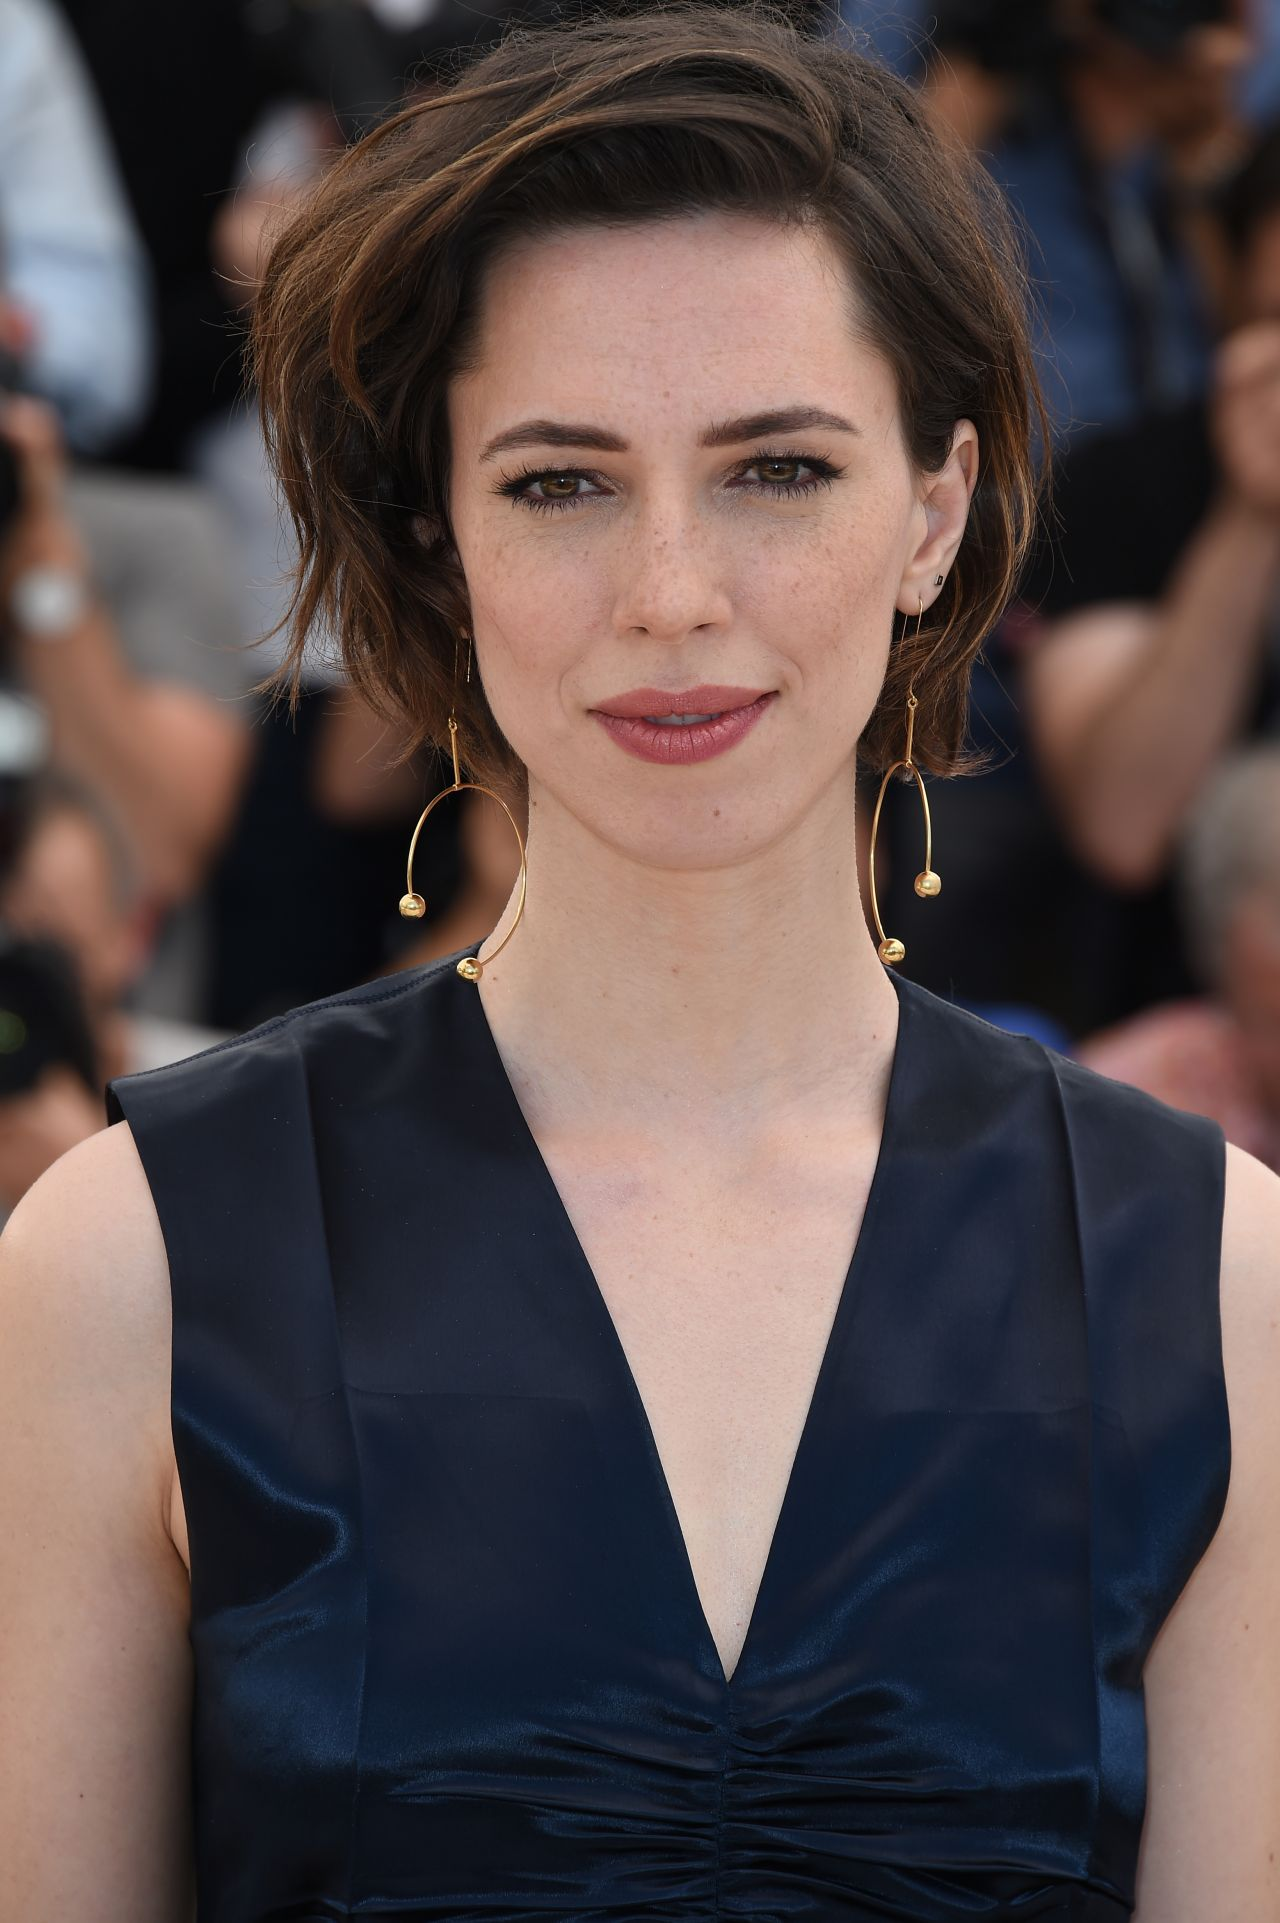 Rebecca Hall nudes (75 photo) Ass, Instagram, see through